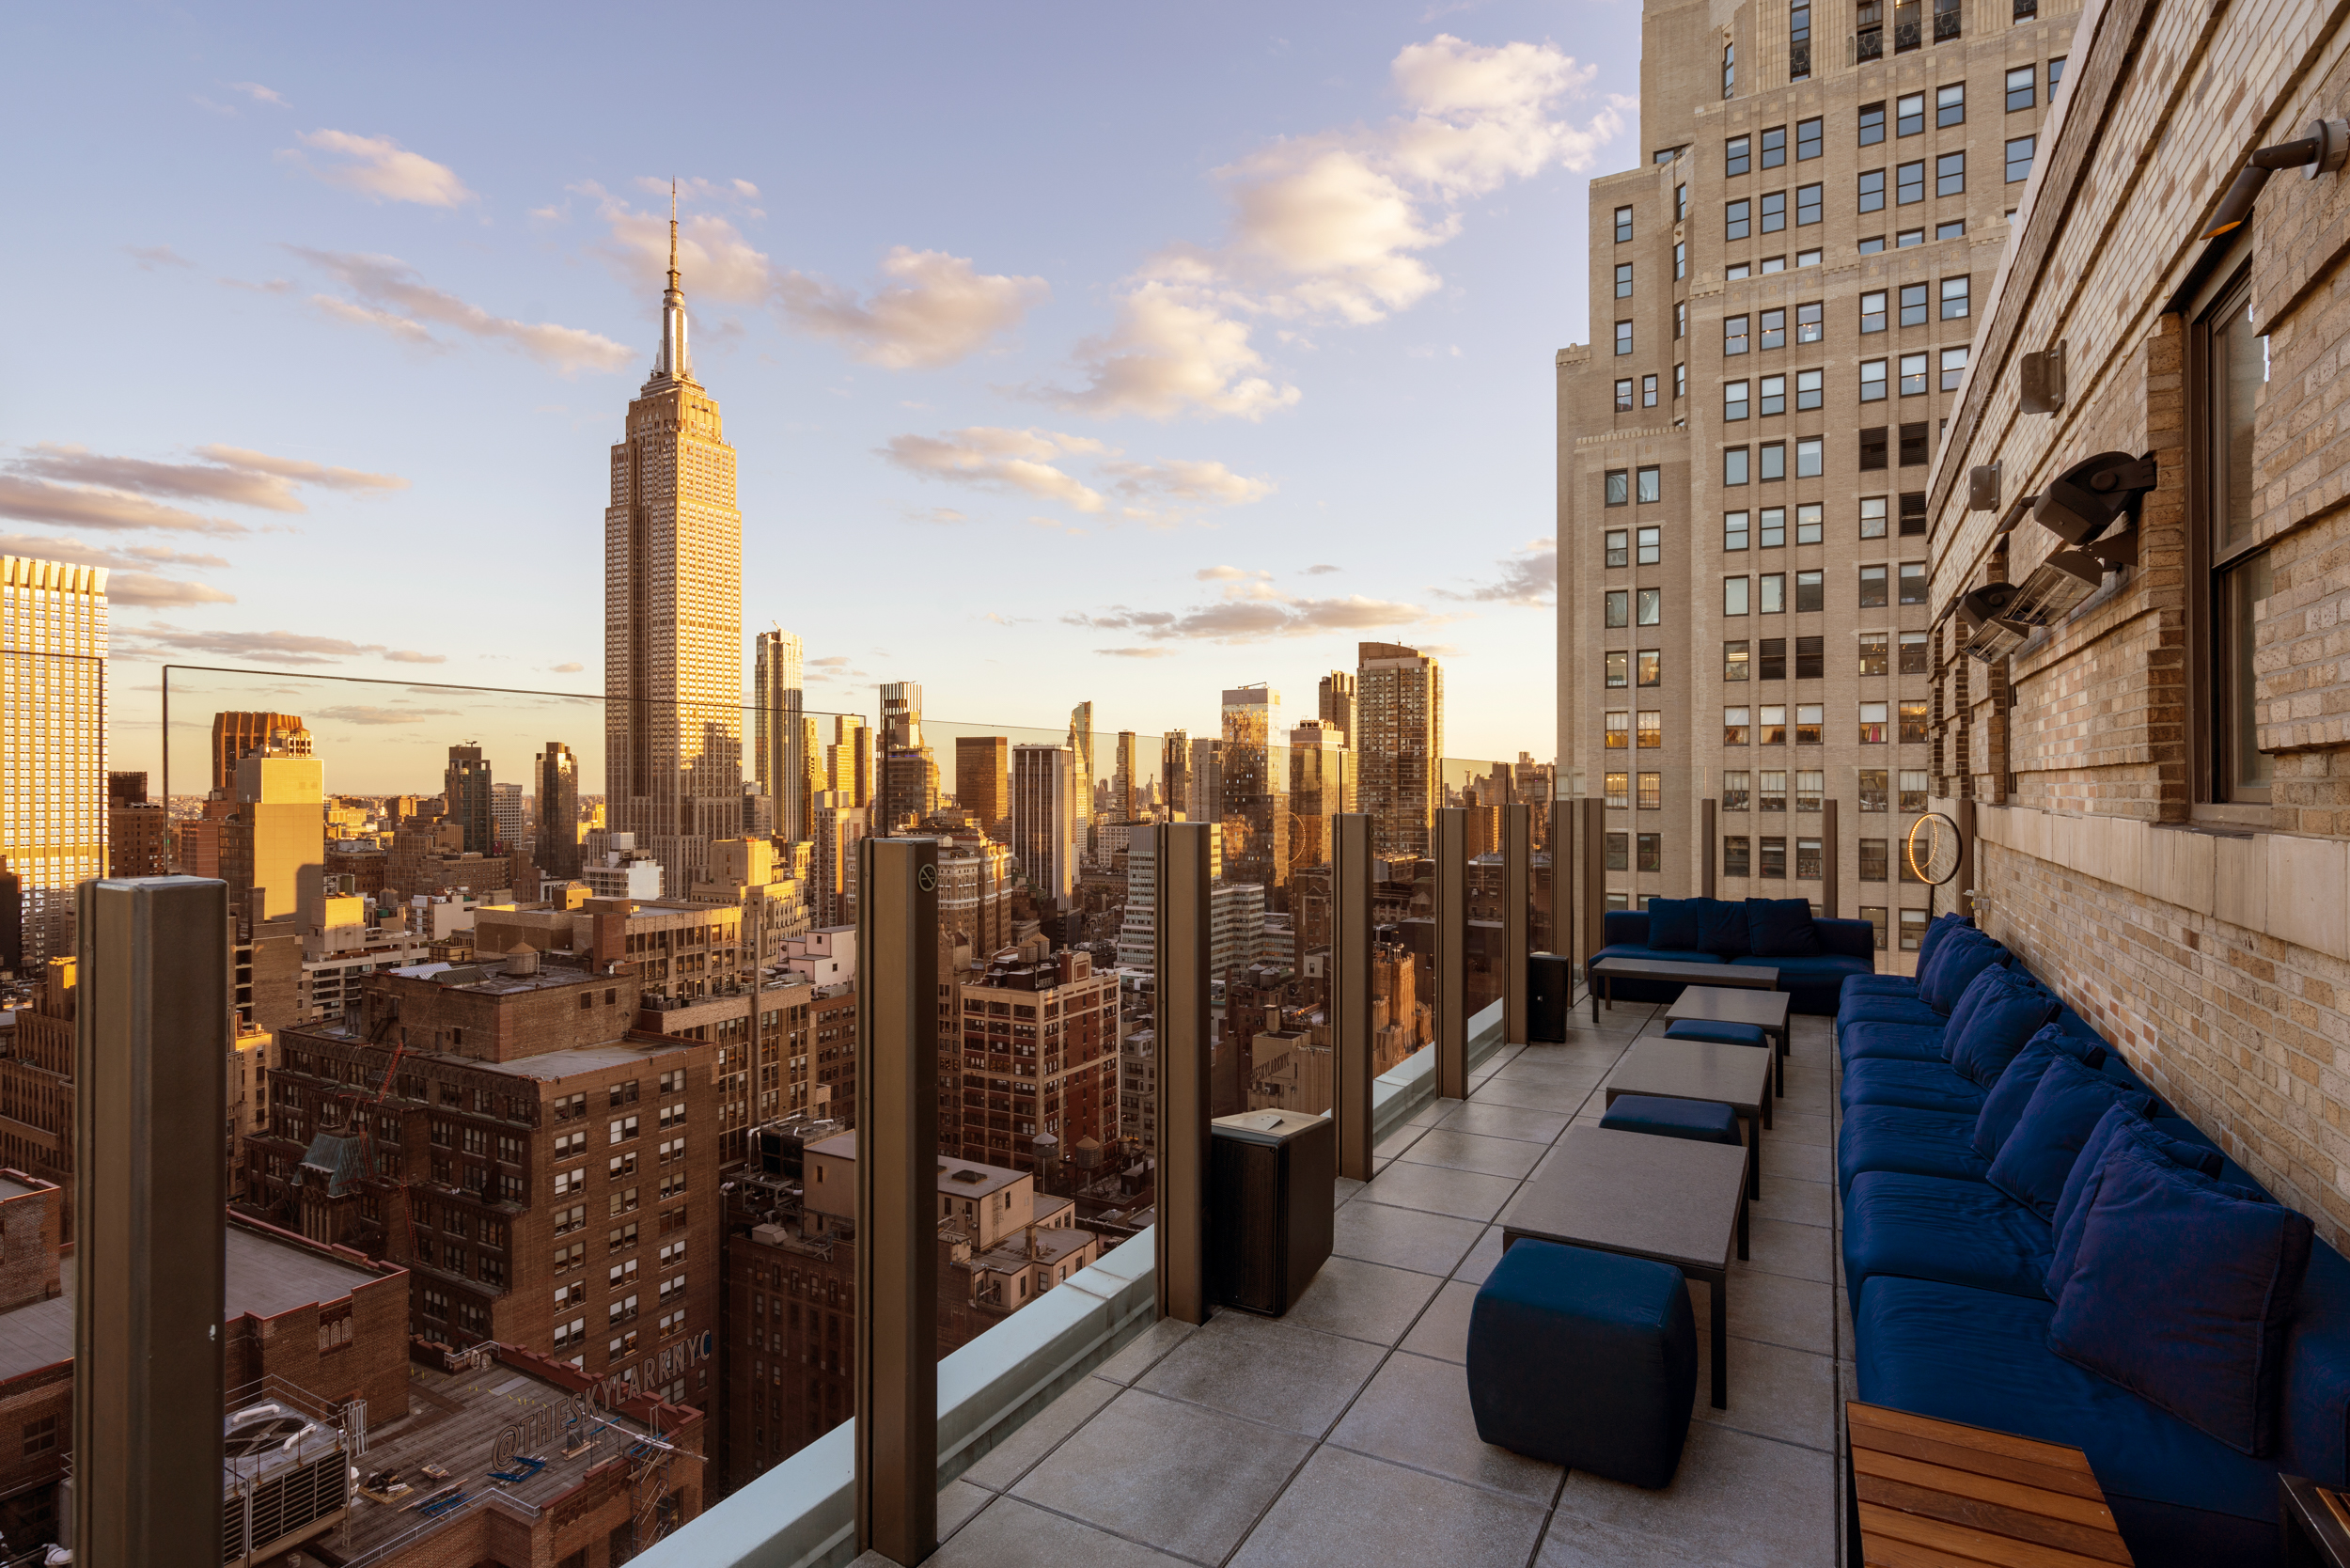 skylark rooftop view of empire state buidling